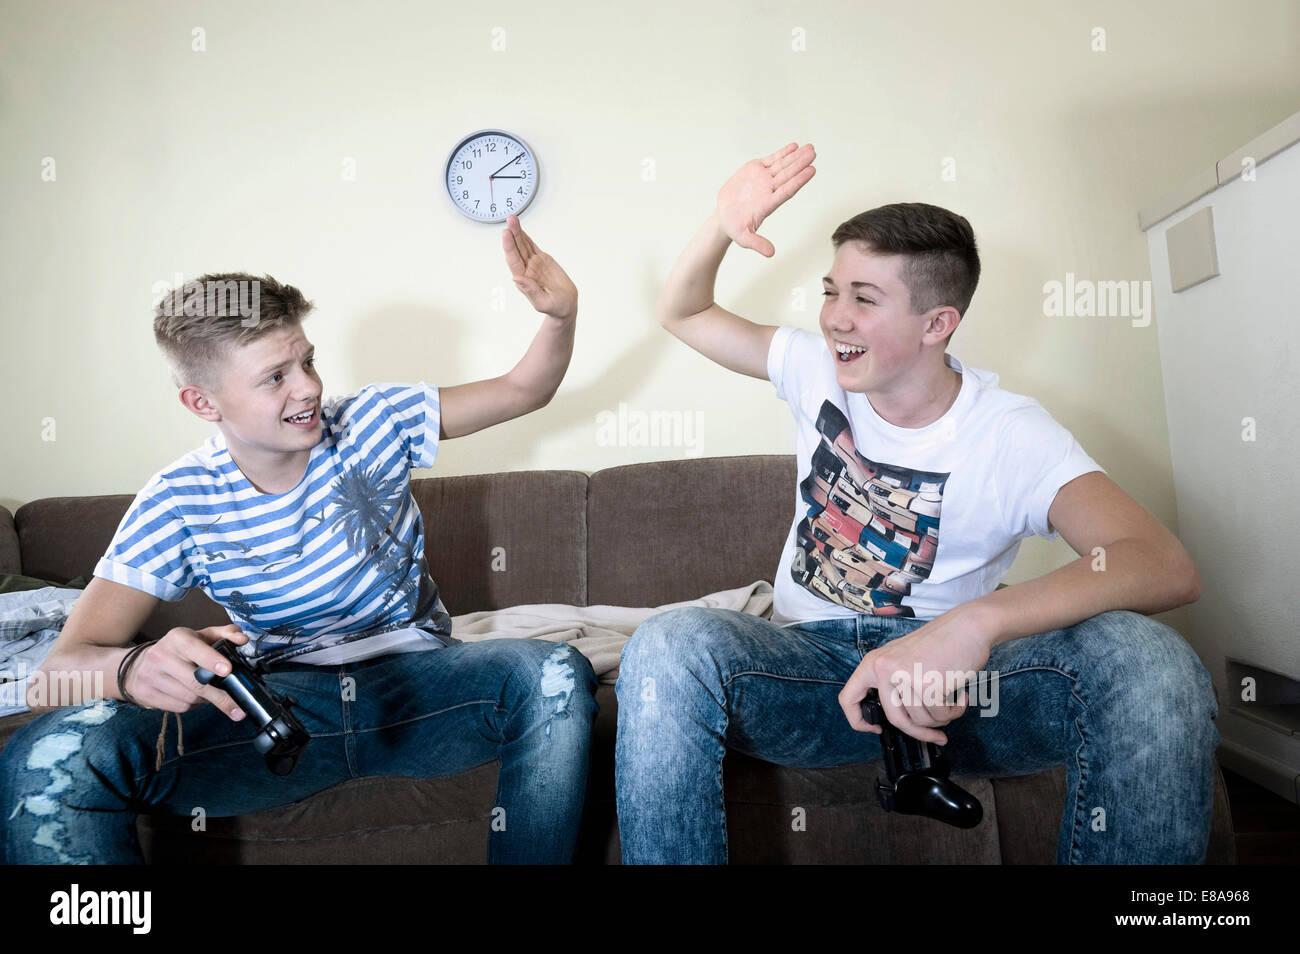 Two teenage boys with video game controllers high fiving - Stock Image